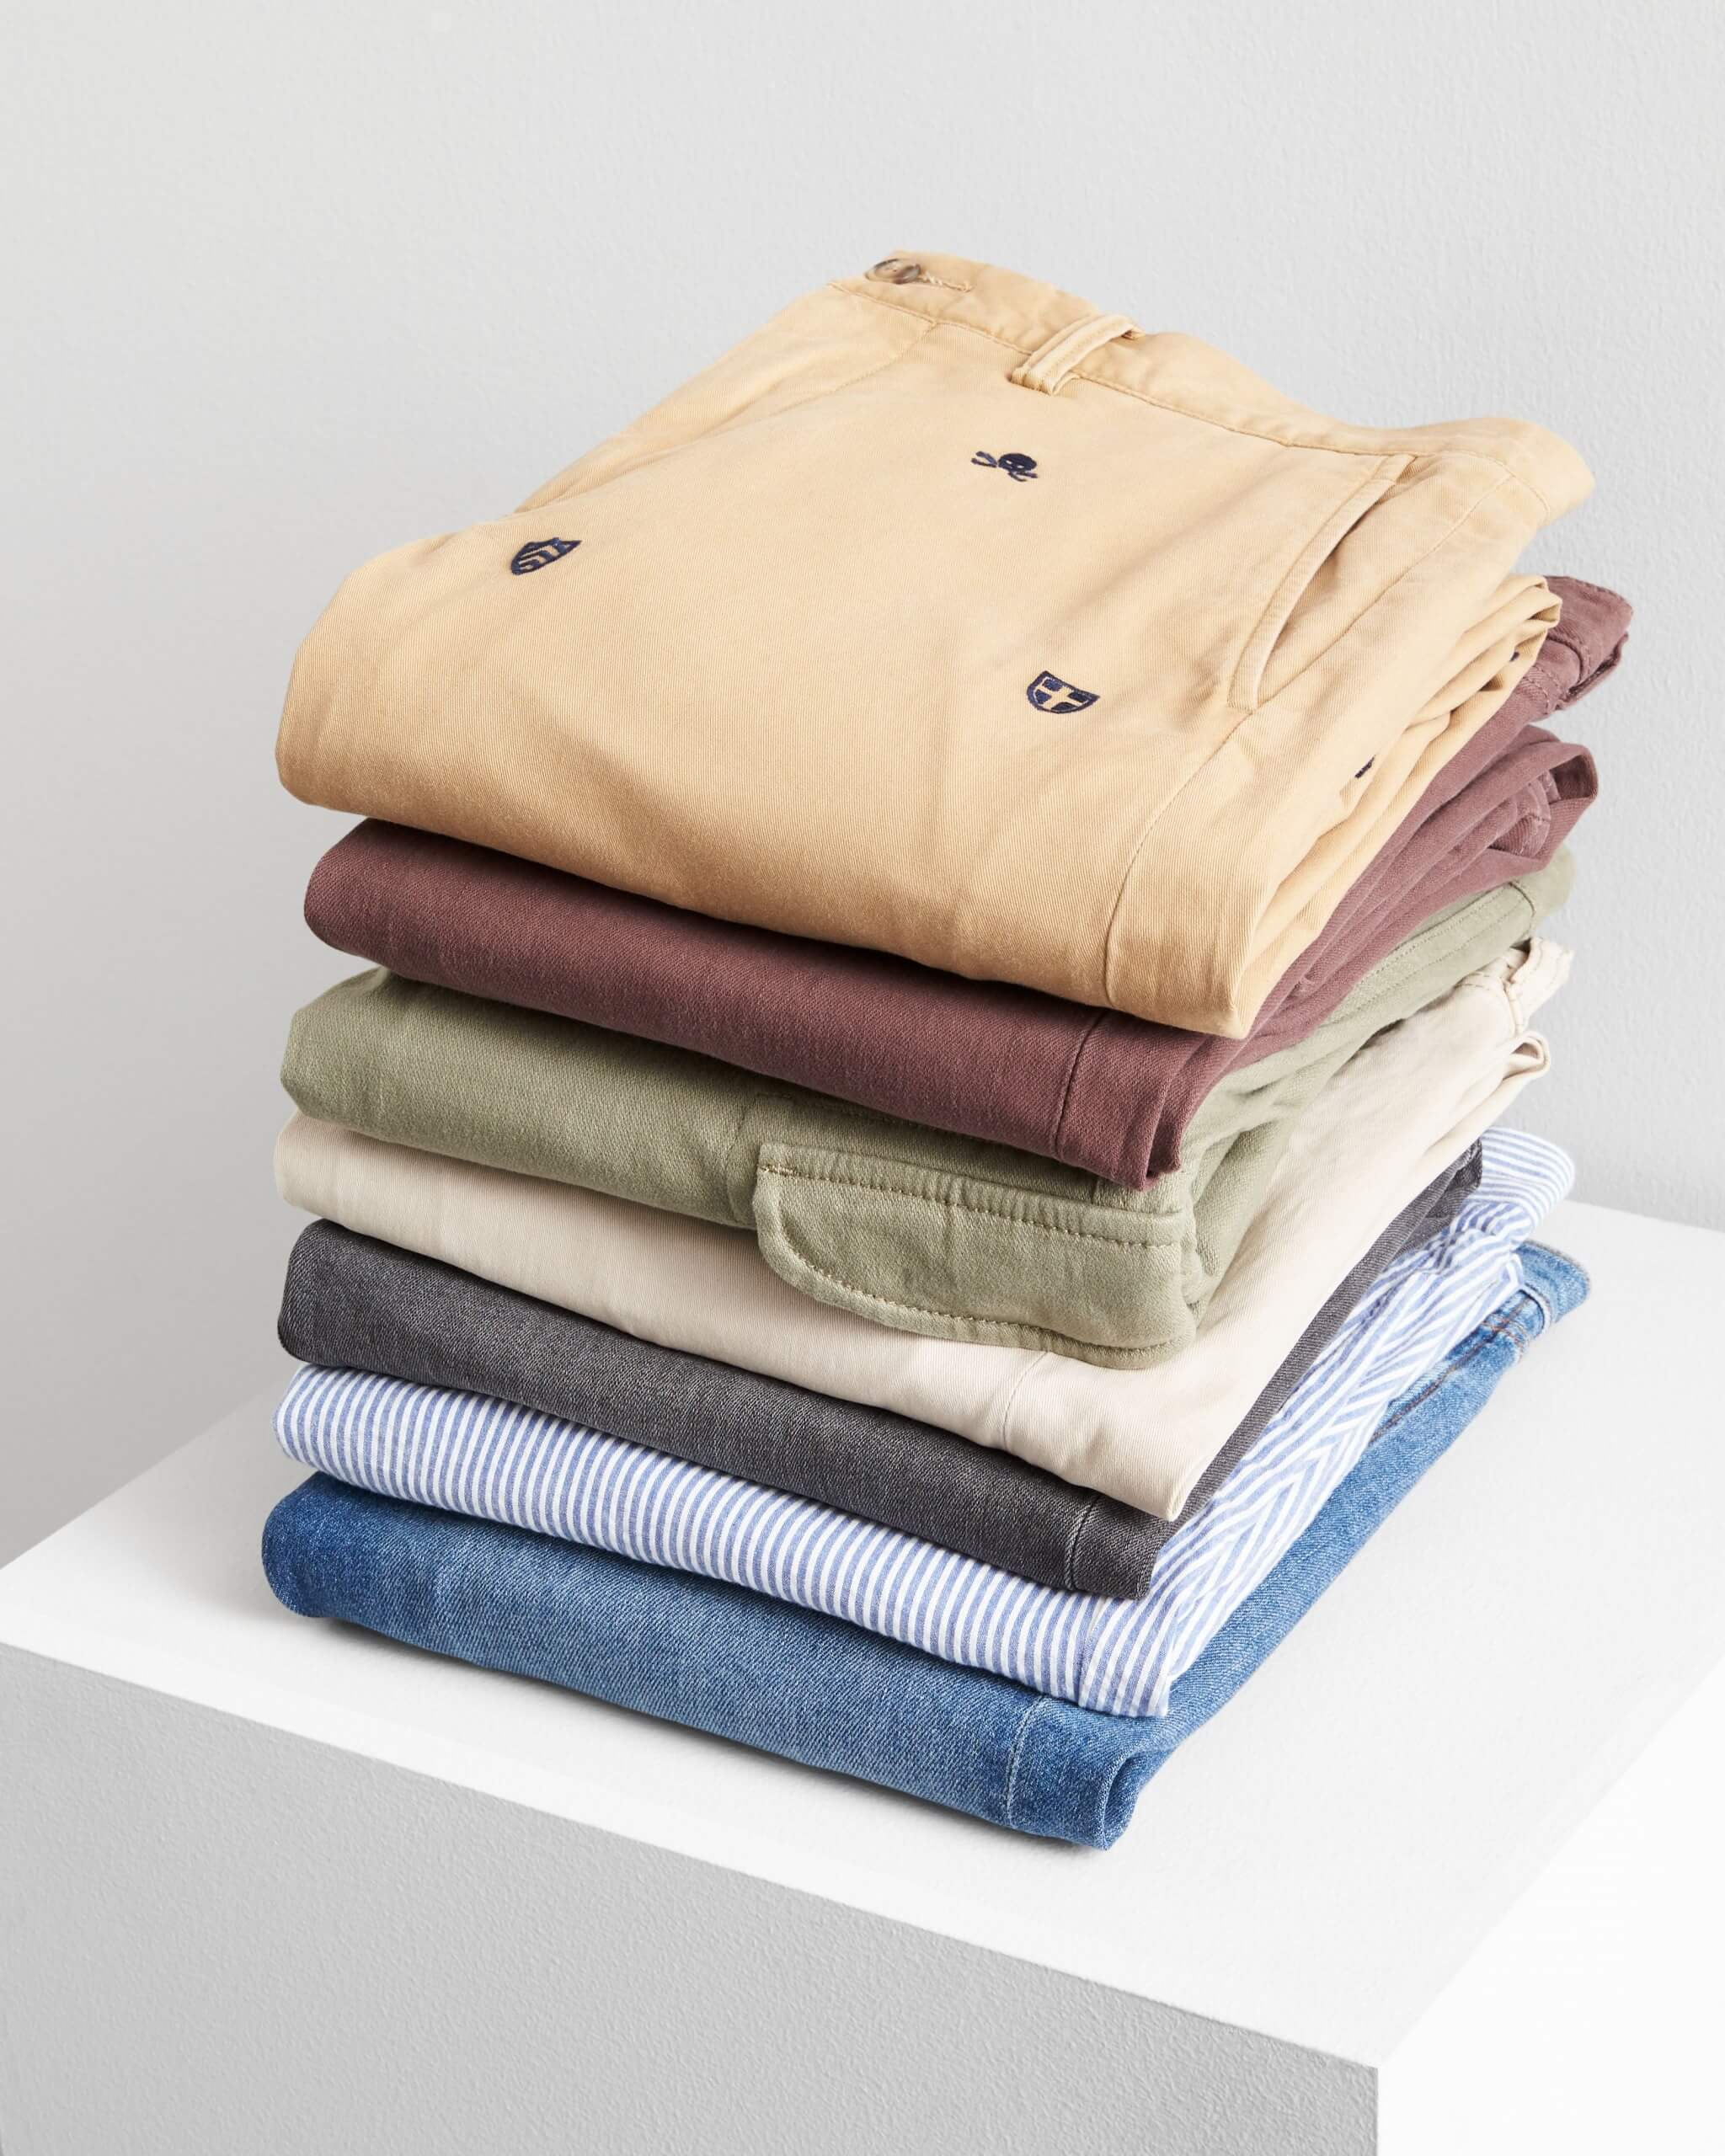 Stitch Fix Men's stack of slim pants in denim, olive, cream, burgundy and printed yellow pants on a white cube.